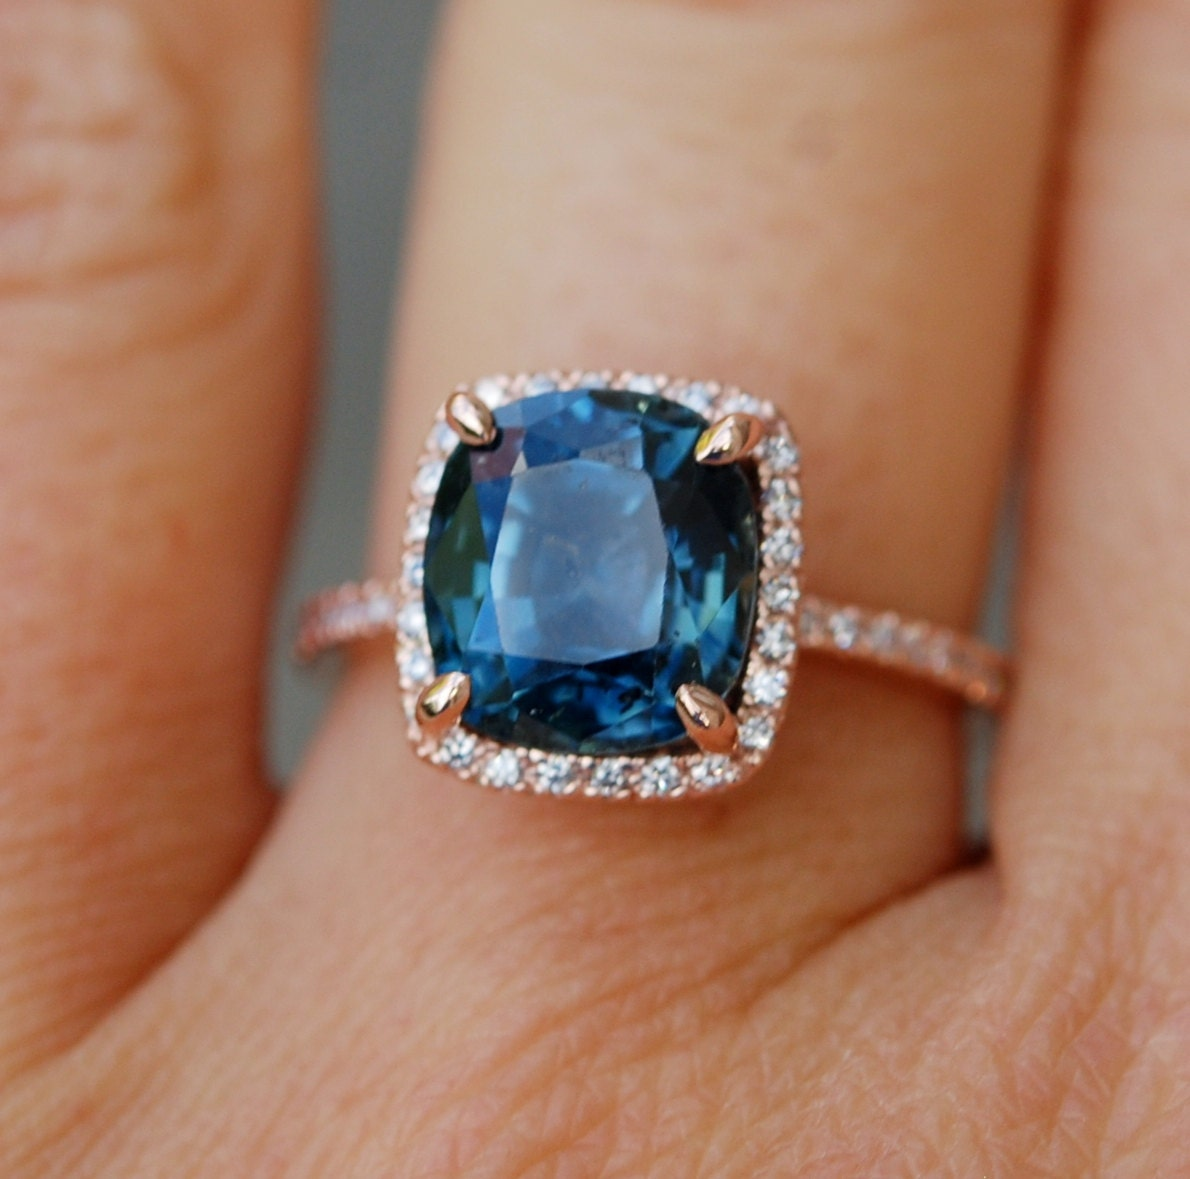 engagement carat montana sapphire diamond for rings encrusted an pops soft fit this a green of ring against and ocean blue its no that heat has beautiful